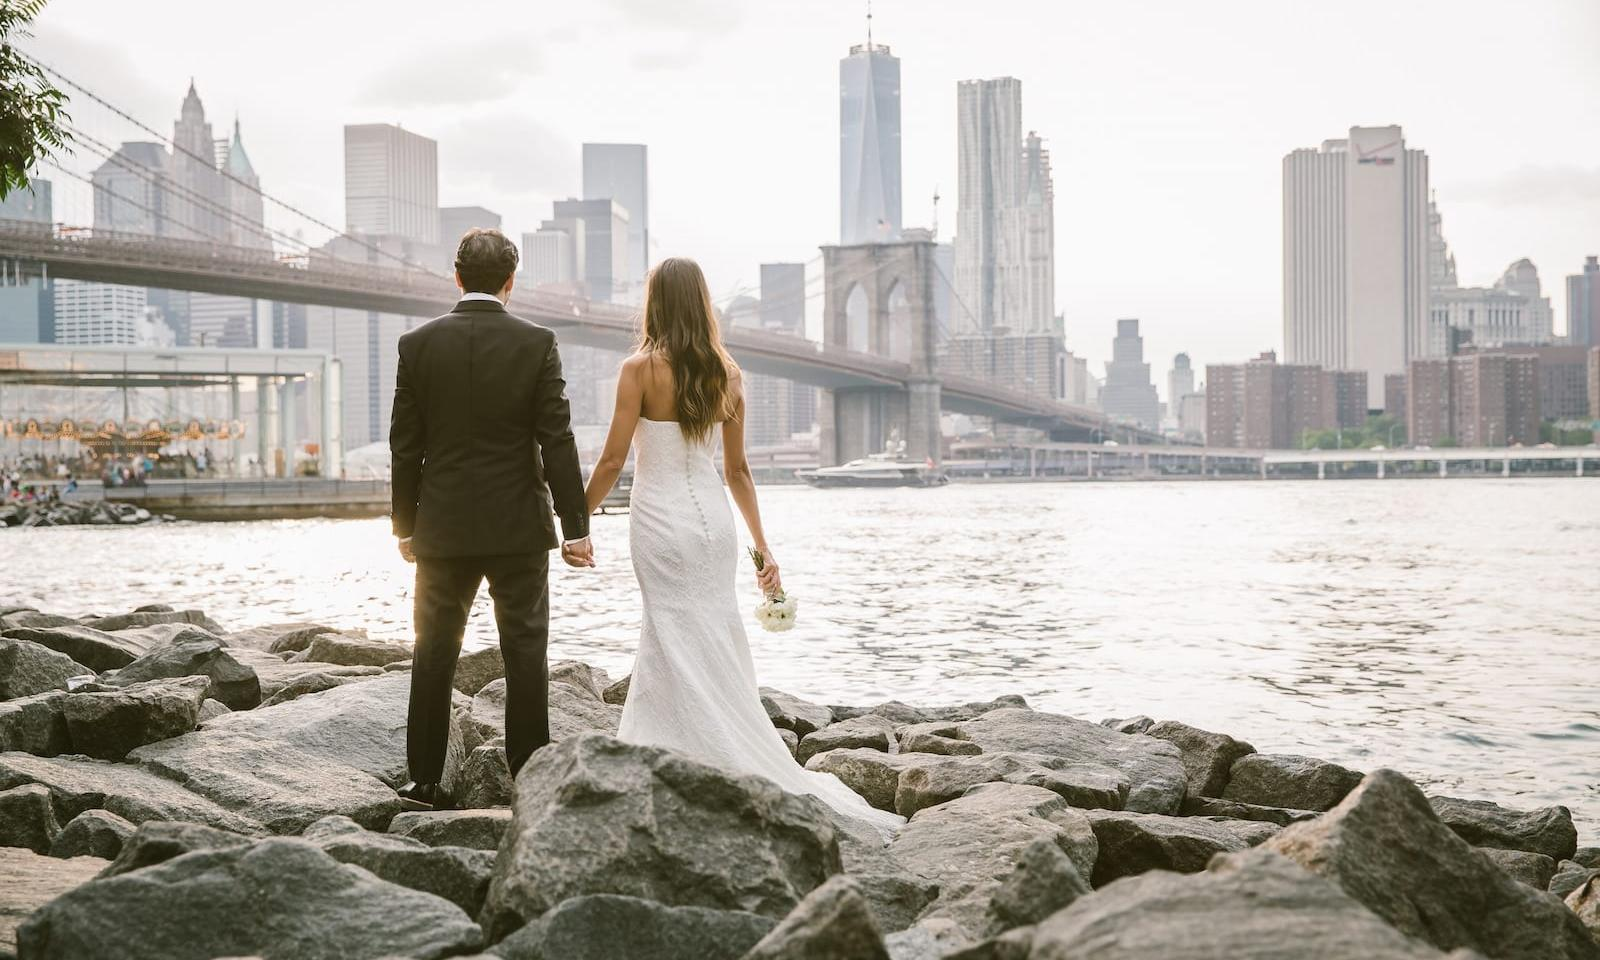 Hochzeit New York Heiraten In New York Die Traumhochzeit Im Big Apple